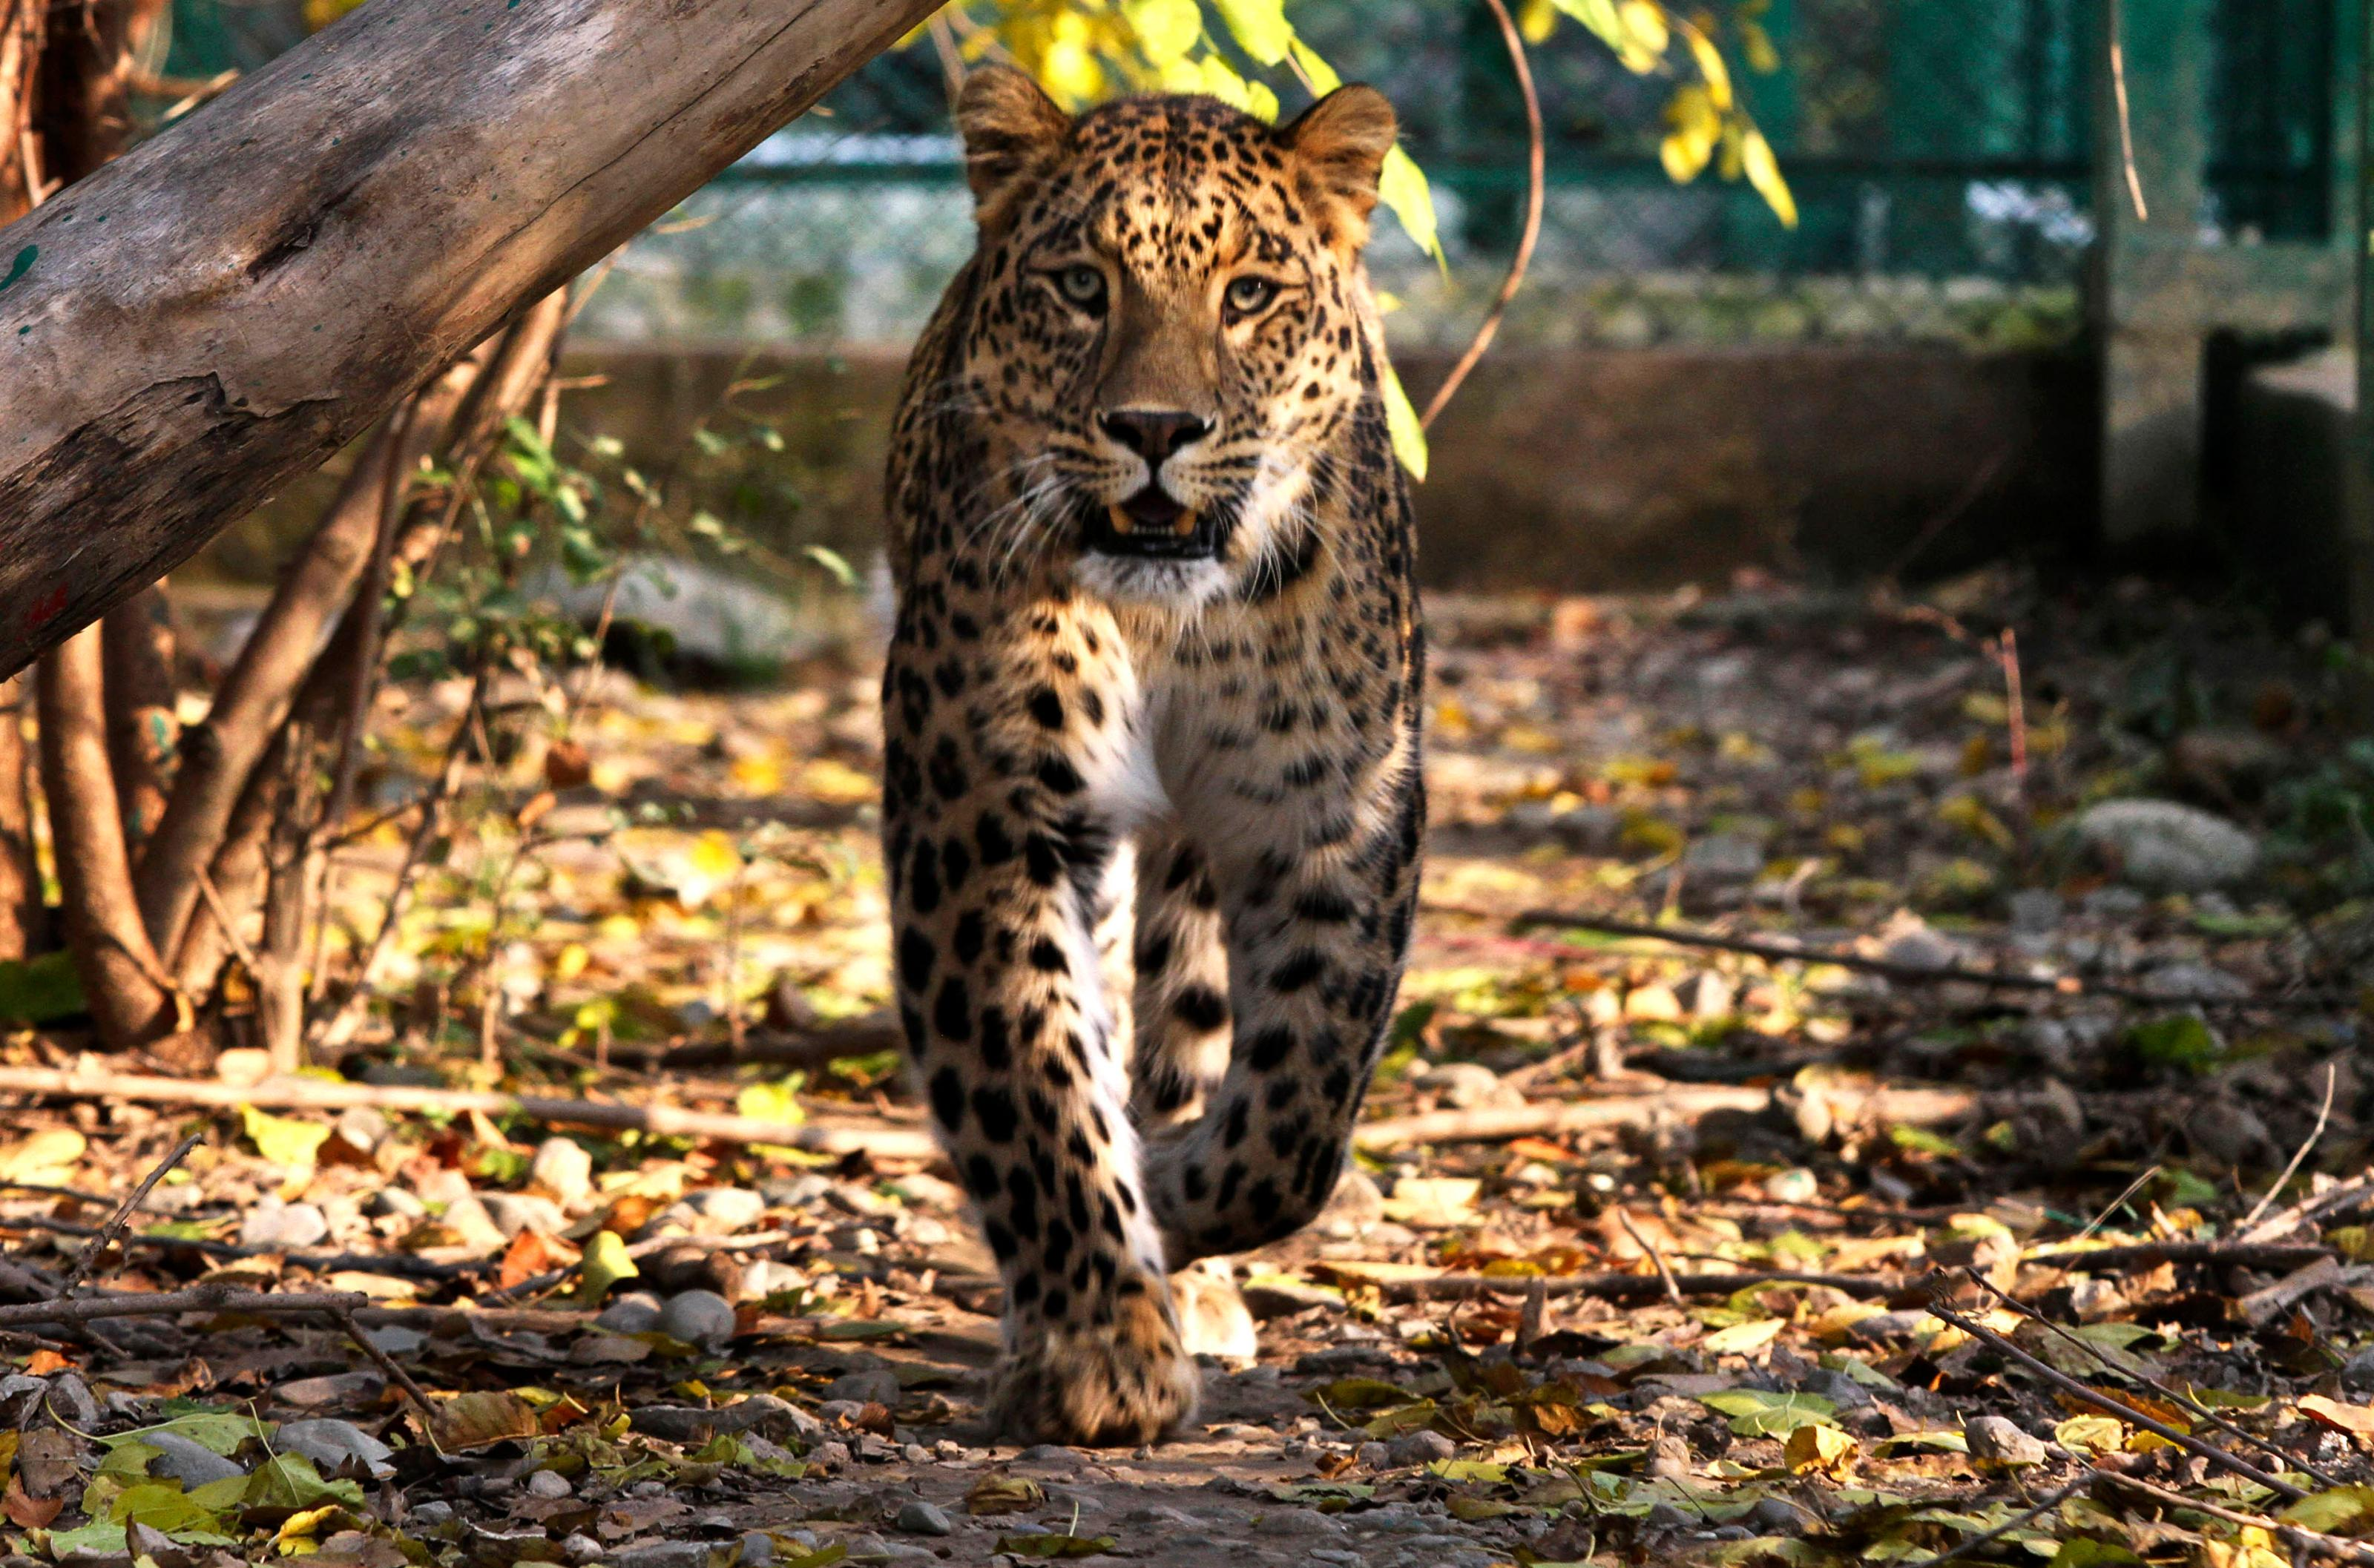 A Himalayan Indian village has negotiated peace with leopards